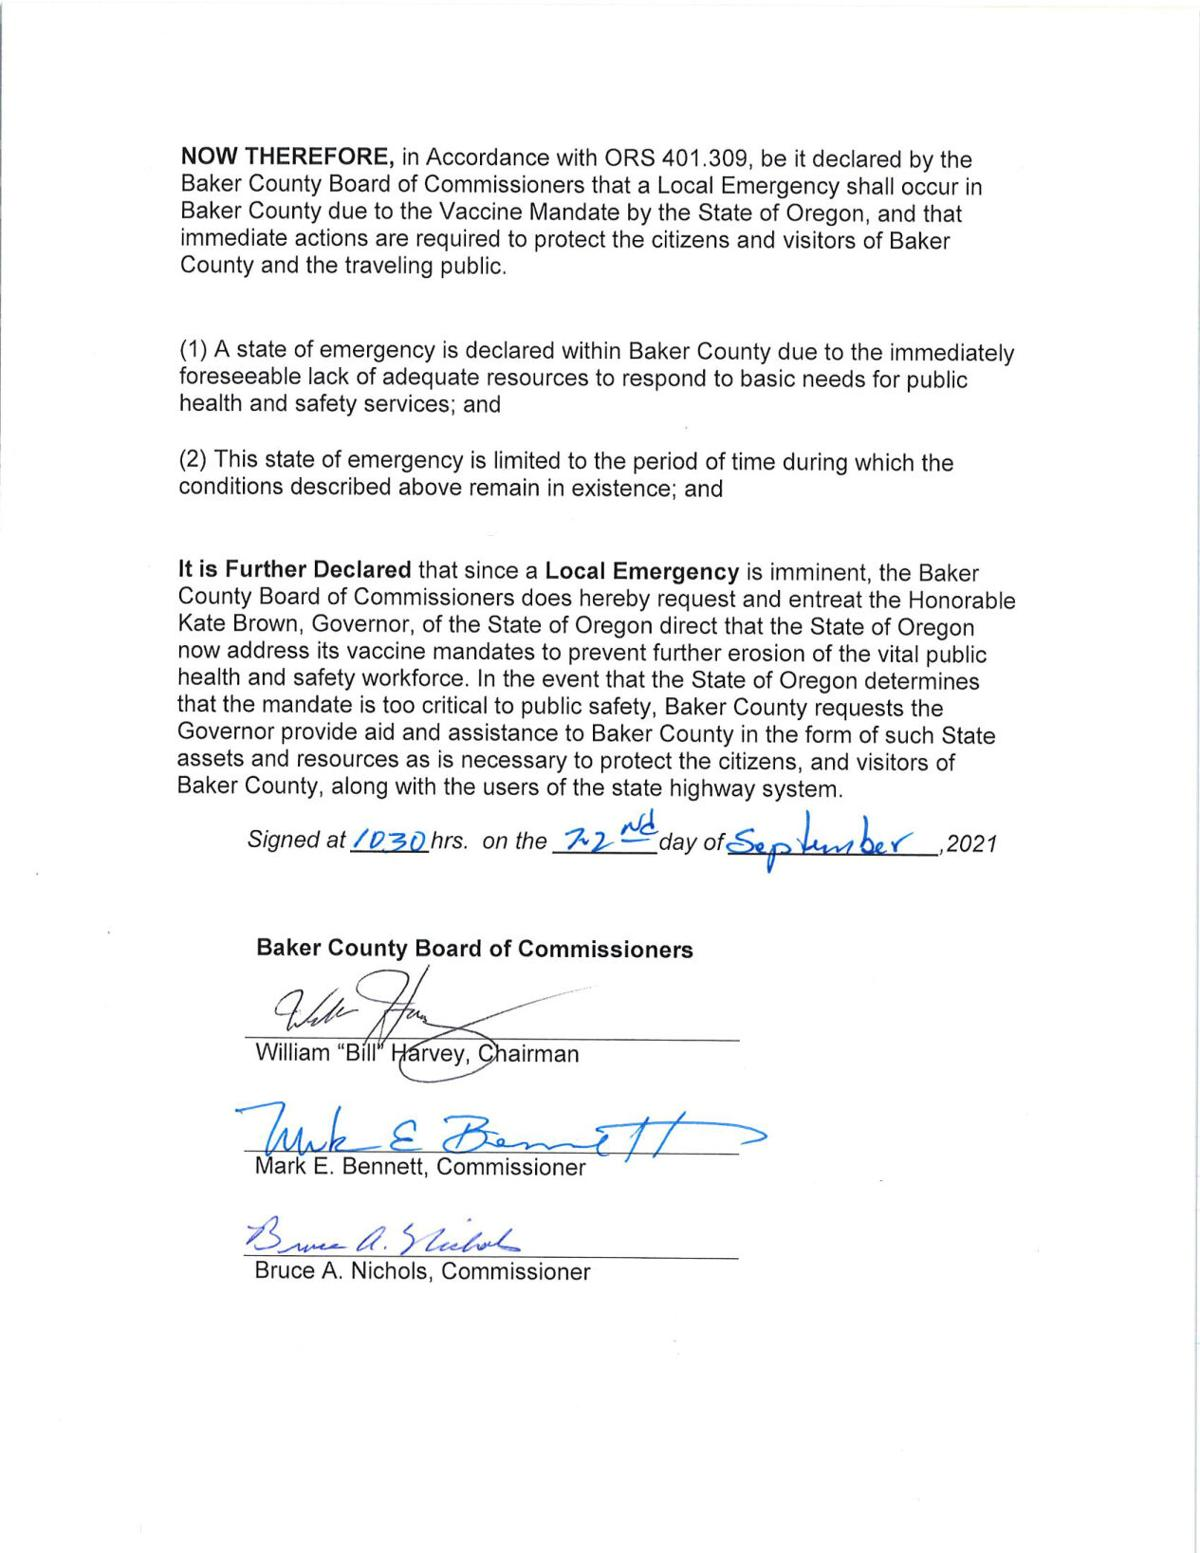 Press Release September 22, 2021 Baker County declares emergency, requests assistance for first responders-3.jpg